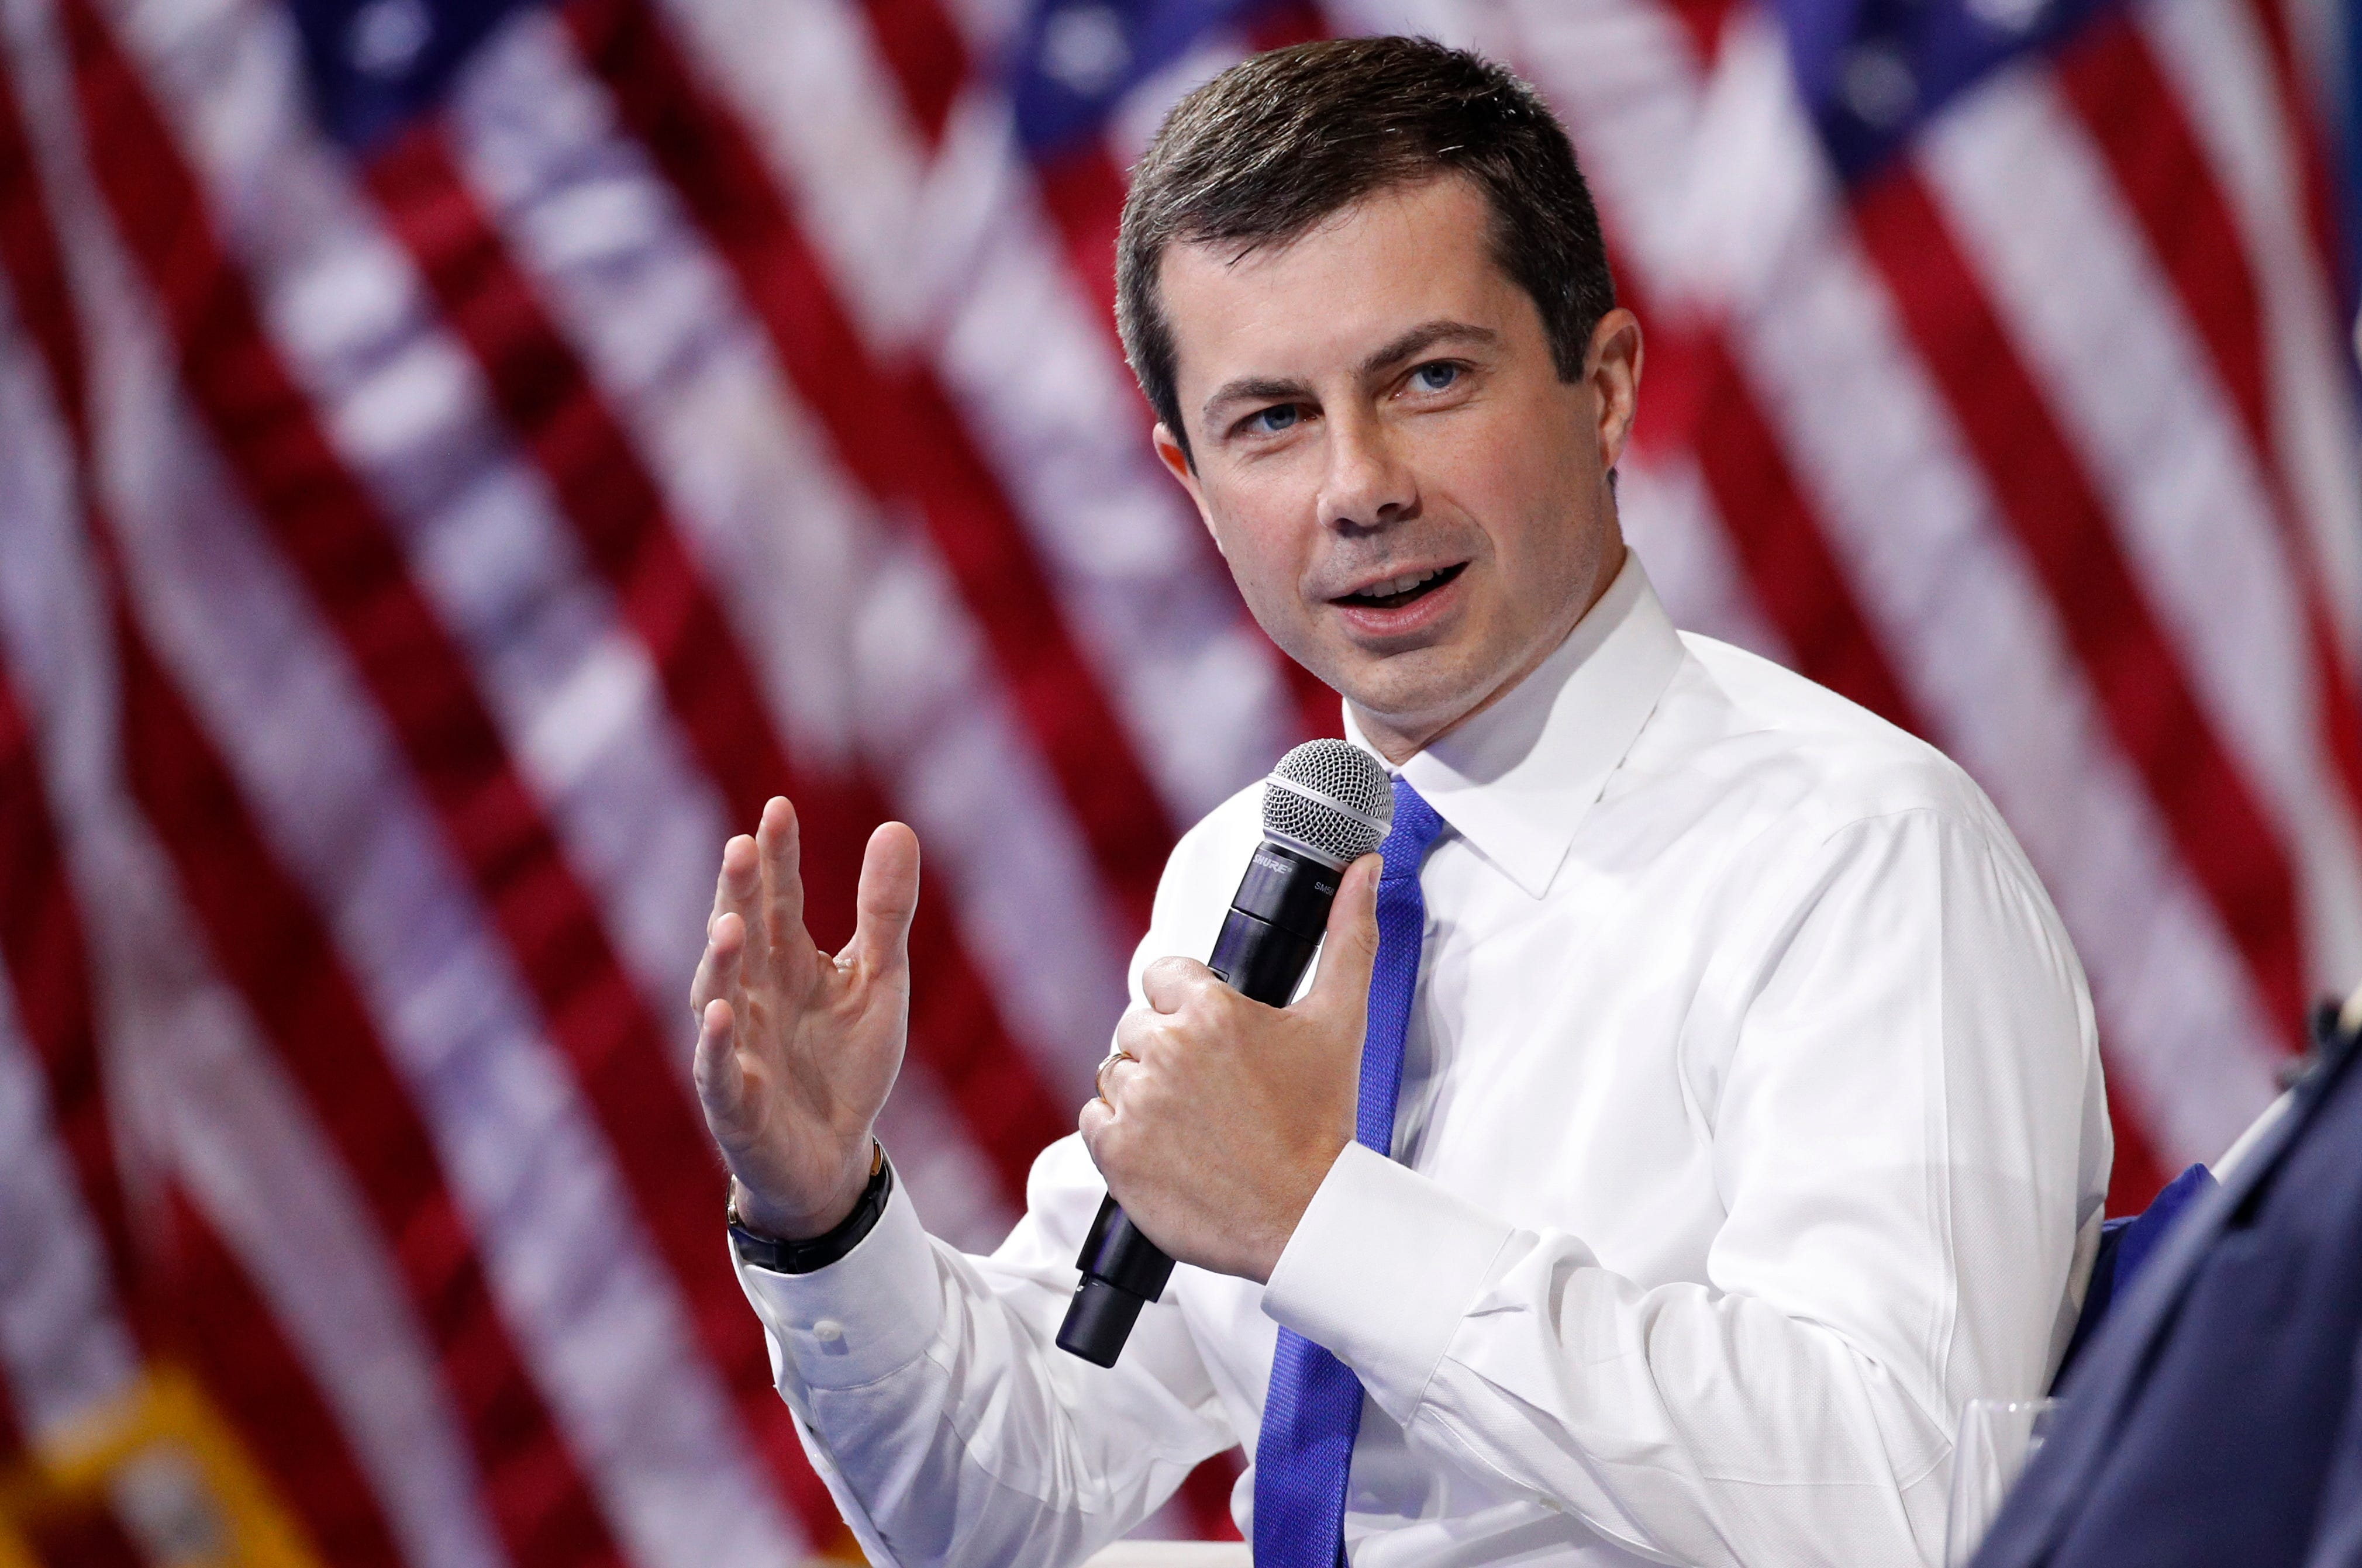 usatoday.com - Maureen Groppe, USA TODAY - How Buttigieg's 'beta city' approach as mayor highlights his differences with Biden, Warren and Sanders